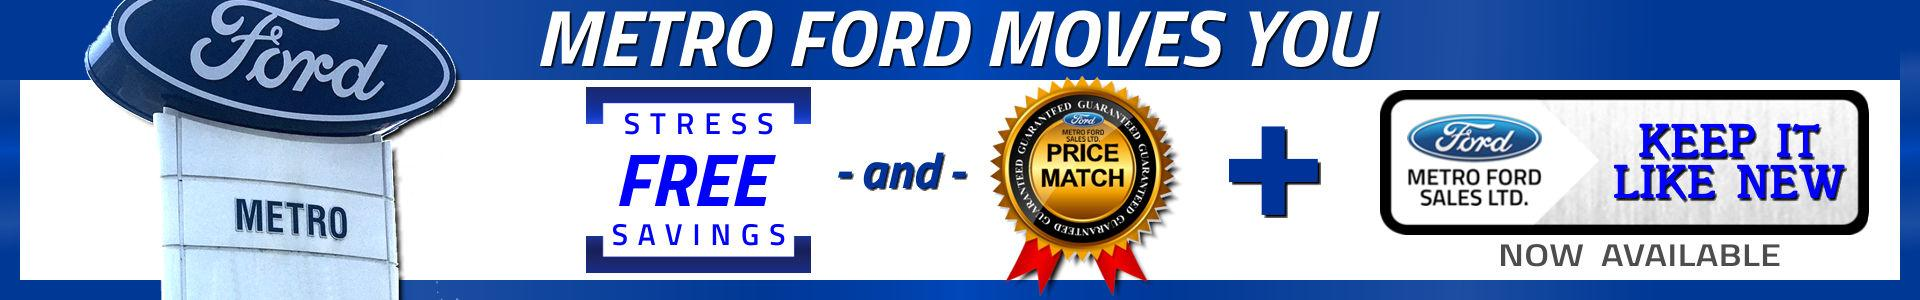 Stress-Free Savings at Metro Ford Dealership in Calgary Alberta